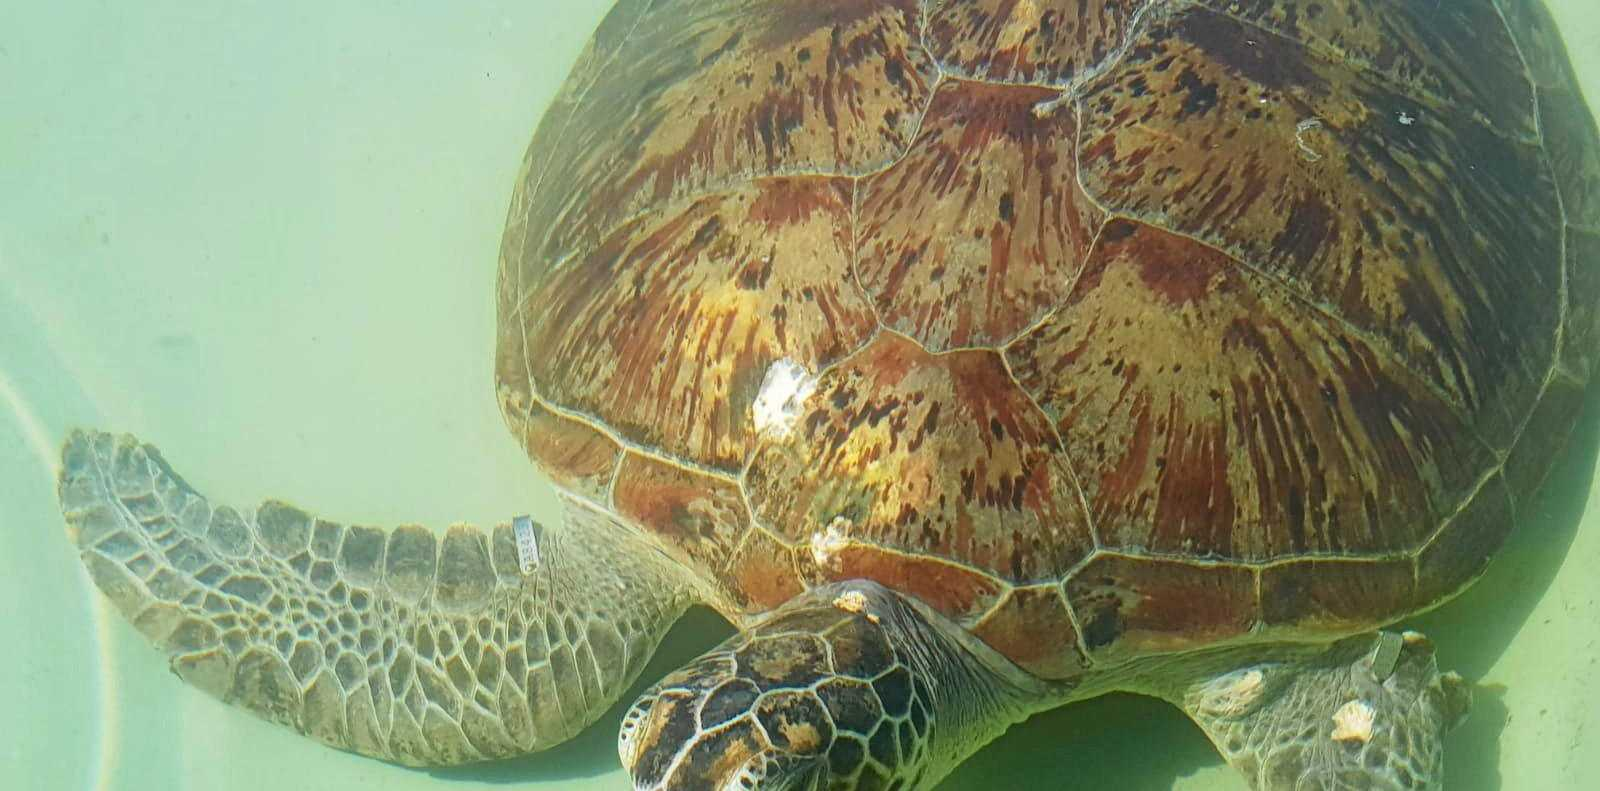 FAREWELL: Nubby the turtle was released back into the Toolooa bends on Wednesday   after he had been in the care of the Gladstone Area Water Board hatchery since June 2018. His front limb was missing most likely due to a shark attack.